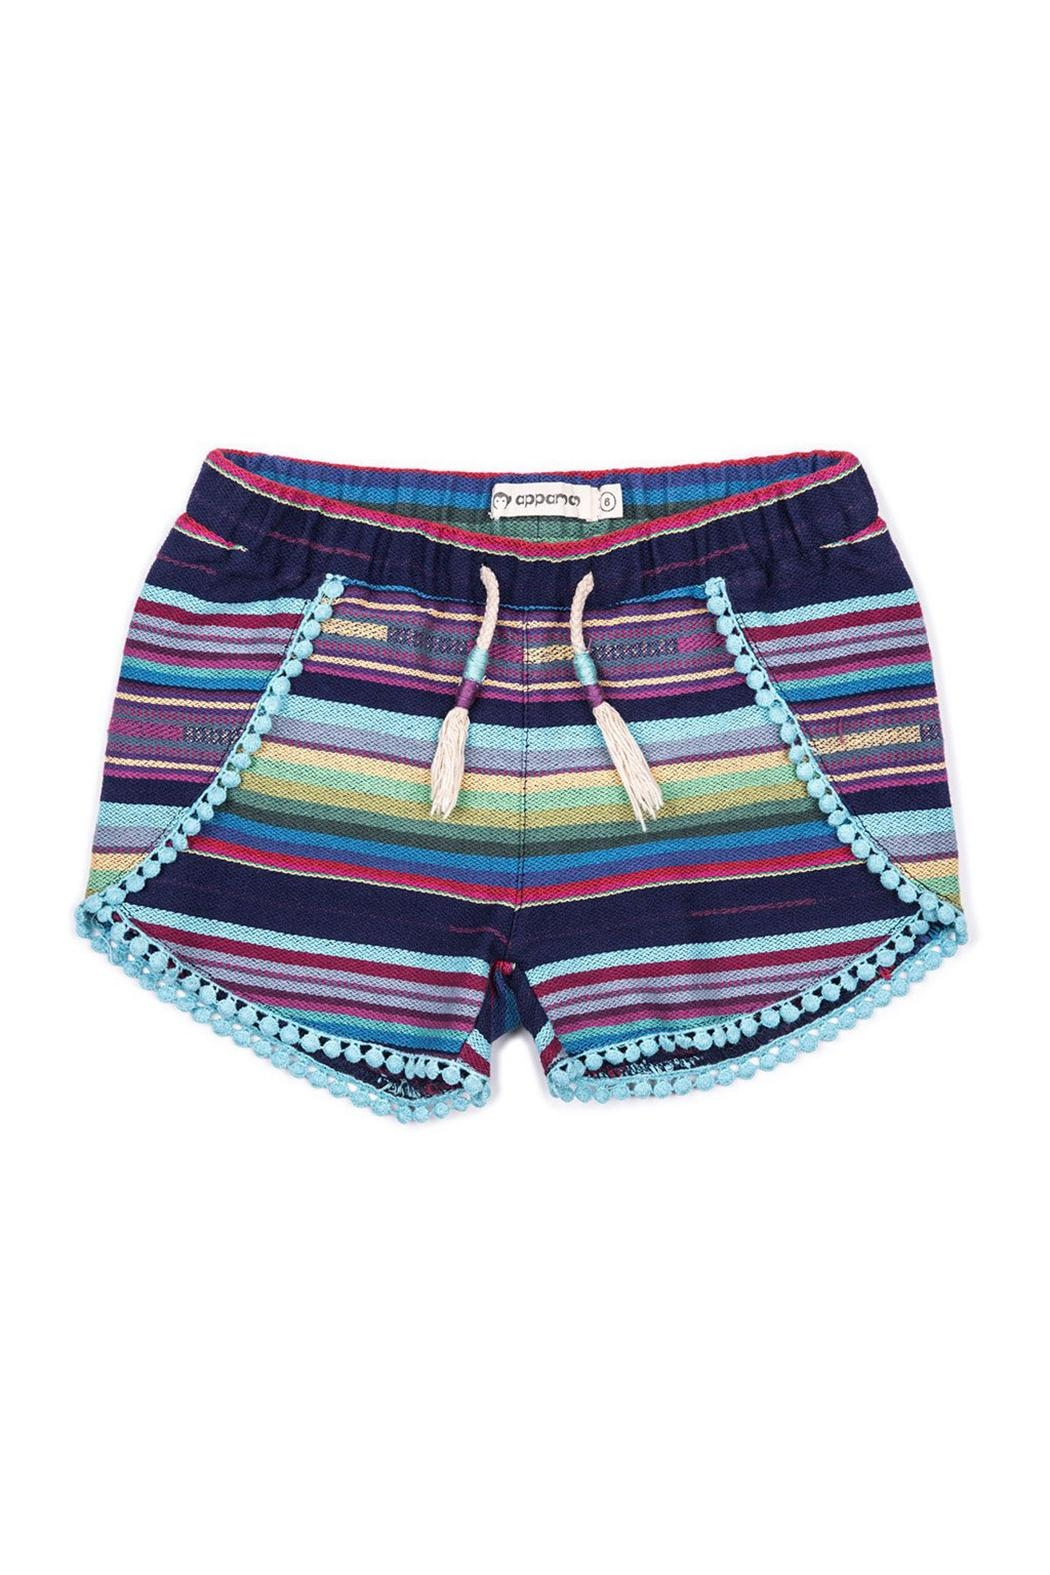 Appaman Tao Striped Shorts - Main Image